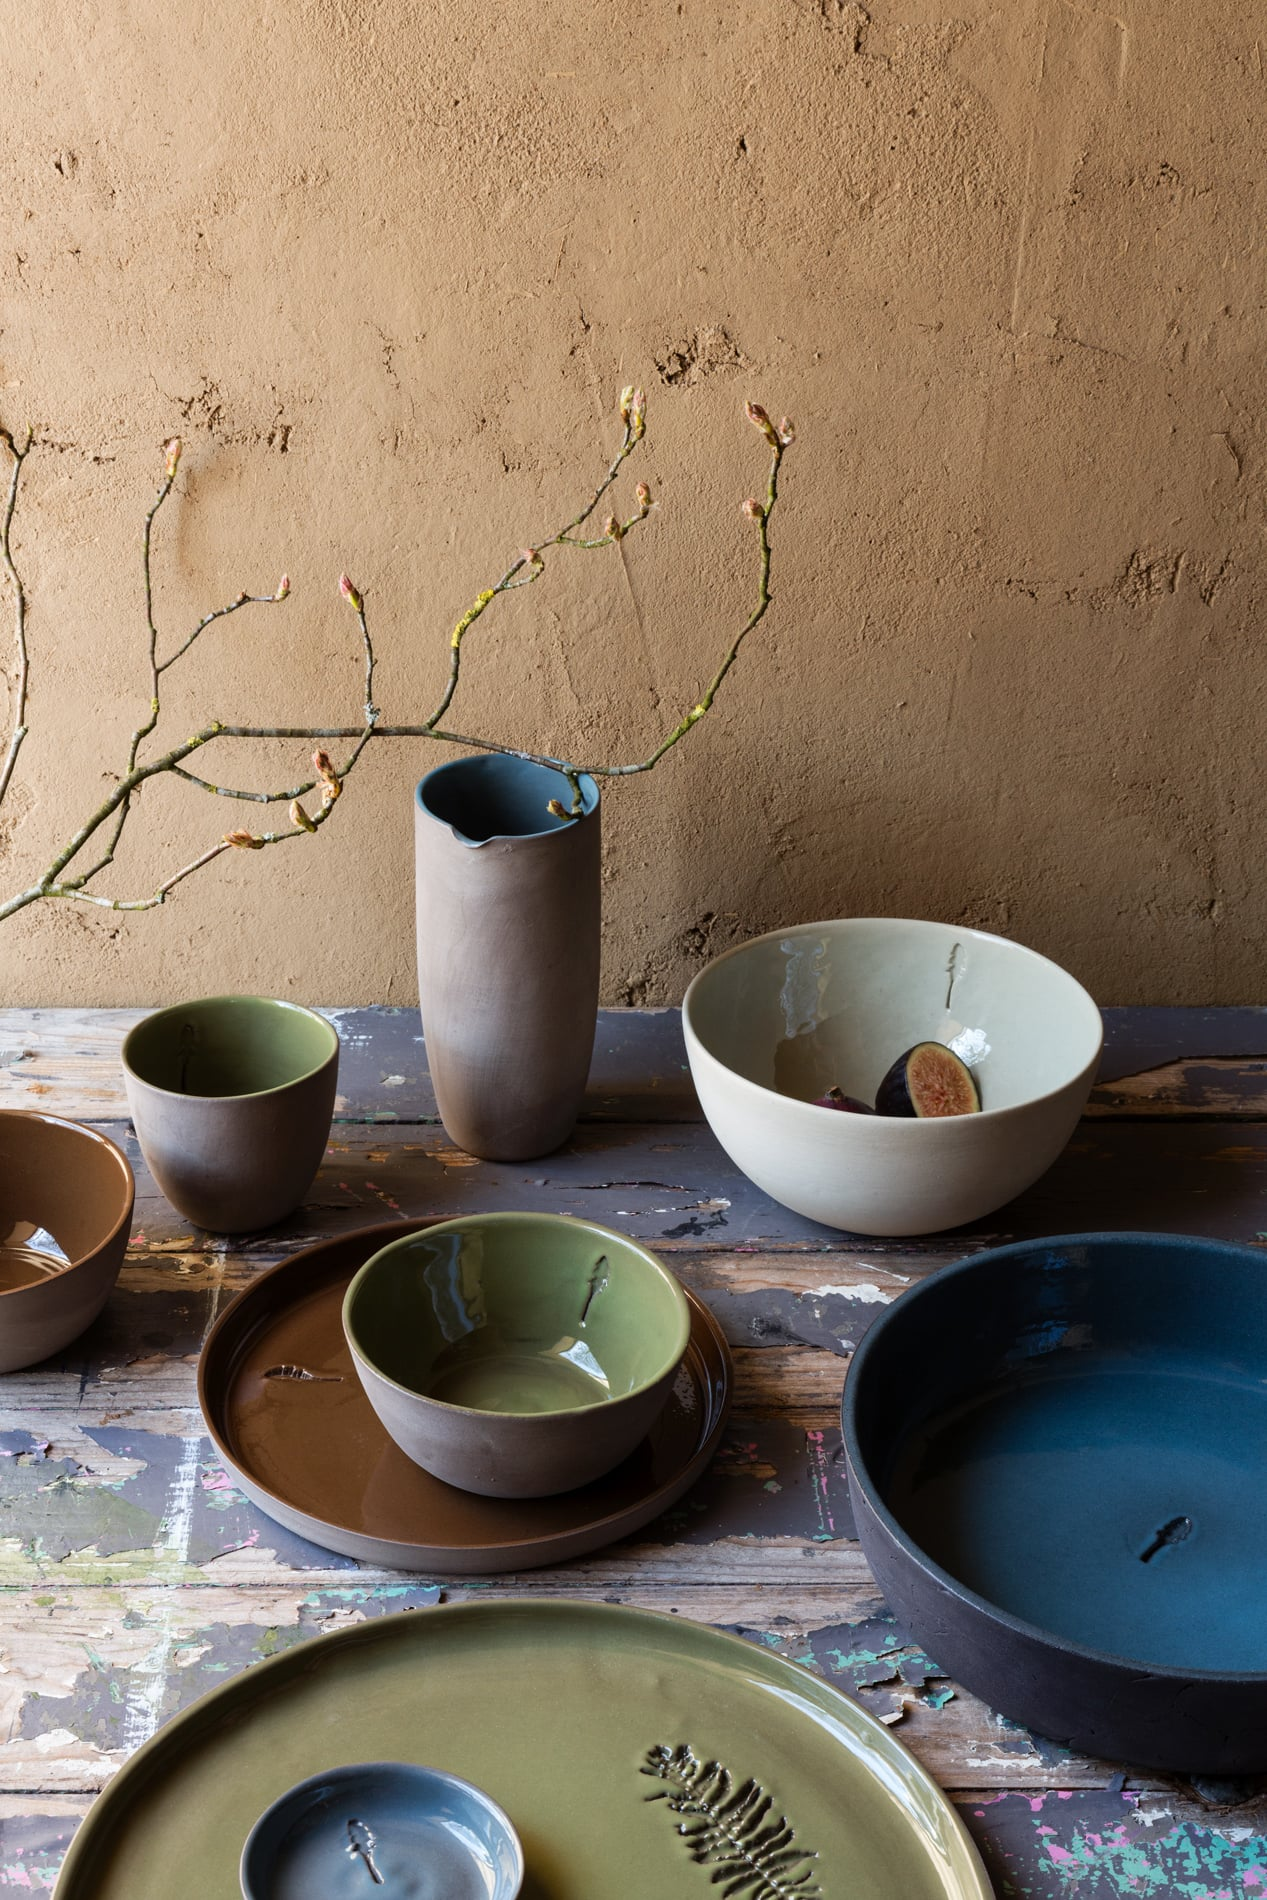 Clay by Claudy Jongstra